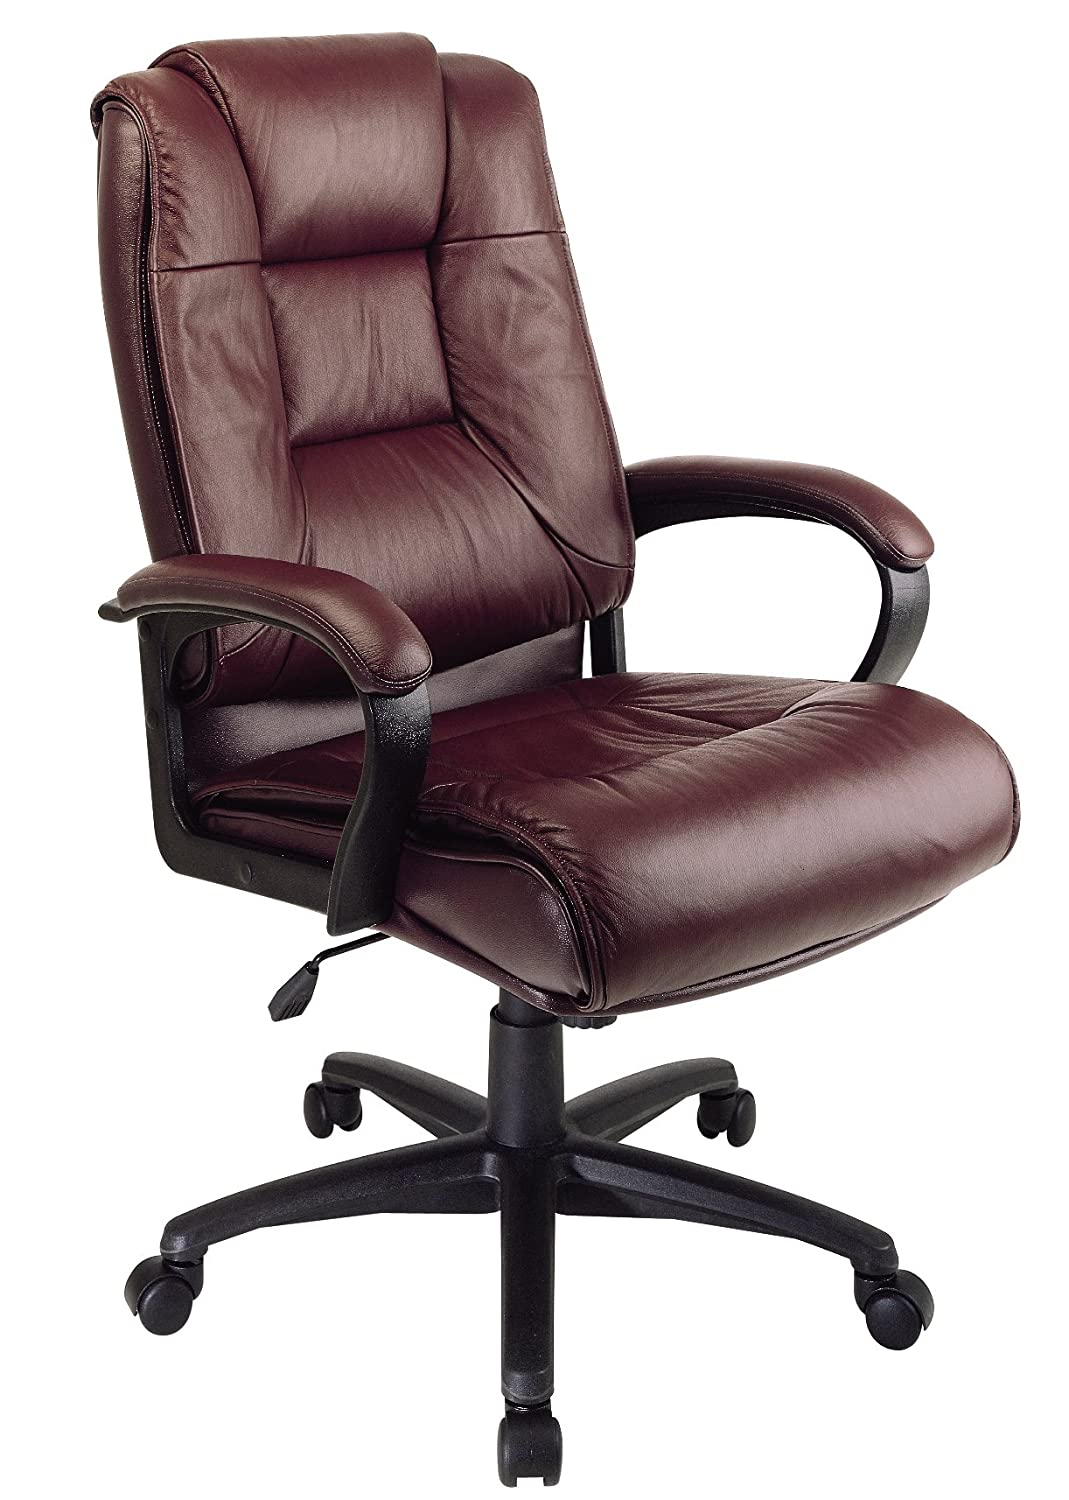 Office Star Executive Chairs Reviewed Office Chairs For Heavy People